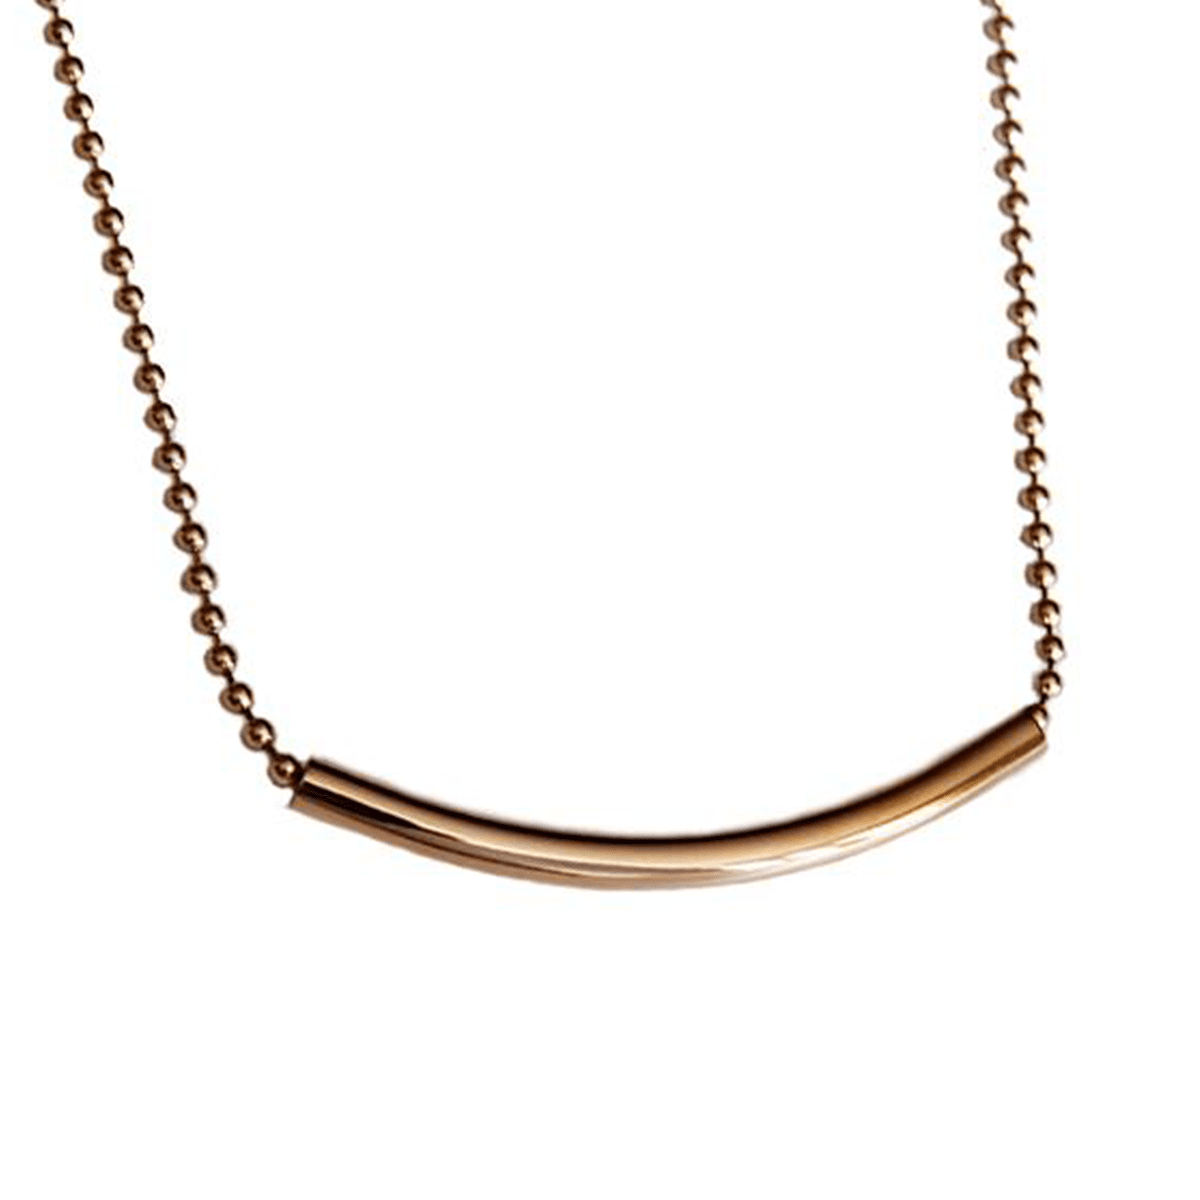 Radiant 18k Gold-Plated Pendant Necklace